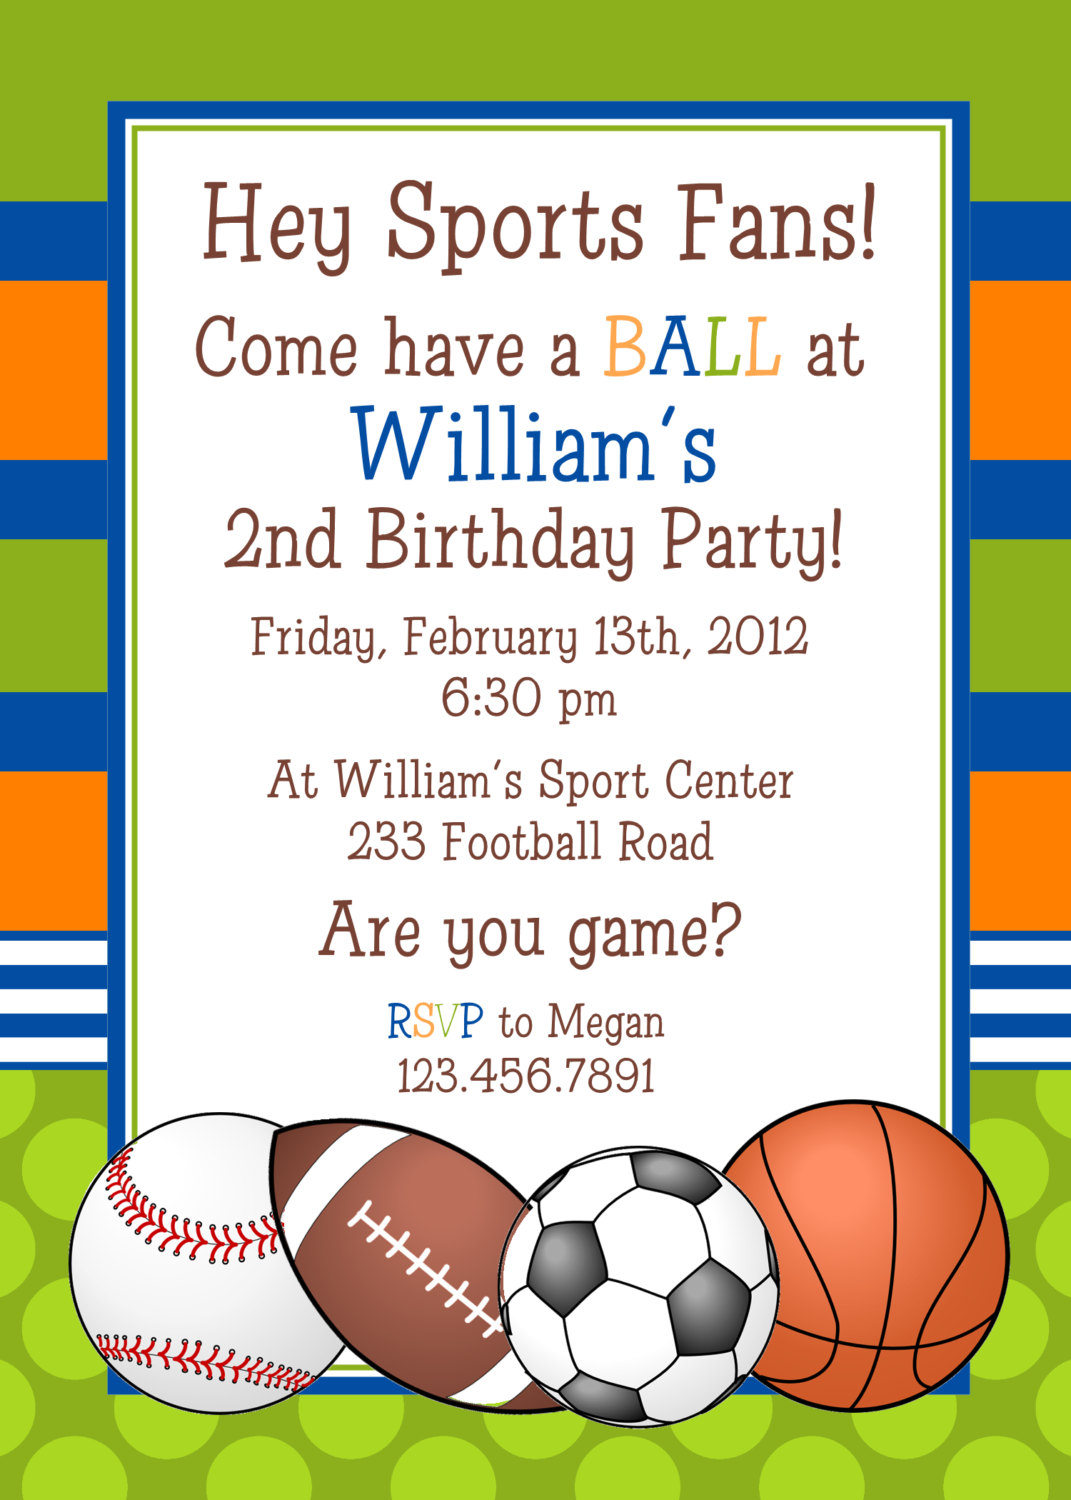 sports birthday party invitation template ; Sports-birthday-invitations-for-a-appealing-birthday-invitation-design-with-appealing-layout-1